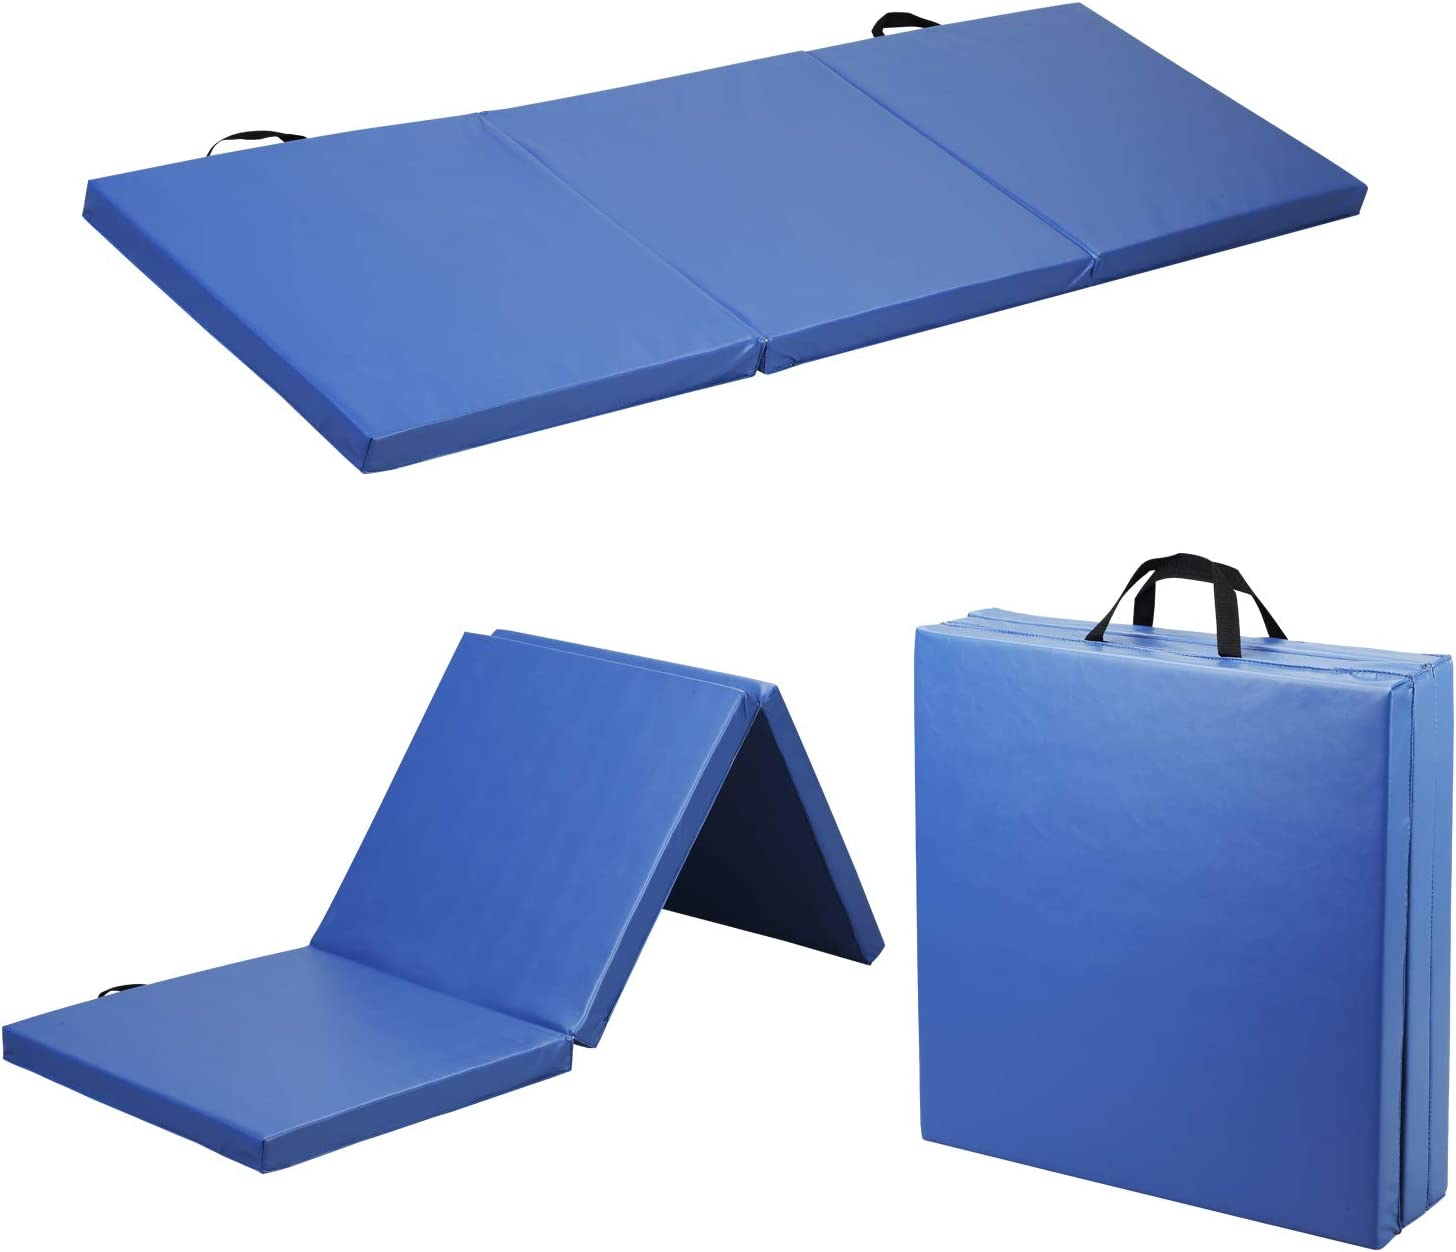 Folding Gymnastics Mat Thick Gym,Wesfital Tumbling Mat 6'x2'x2.1'' Foldable Exercise Mat with Carrying Handles Anti-Tear Tumbling Mats for Yoga Home Workout